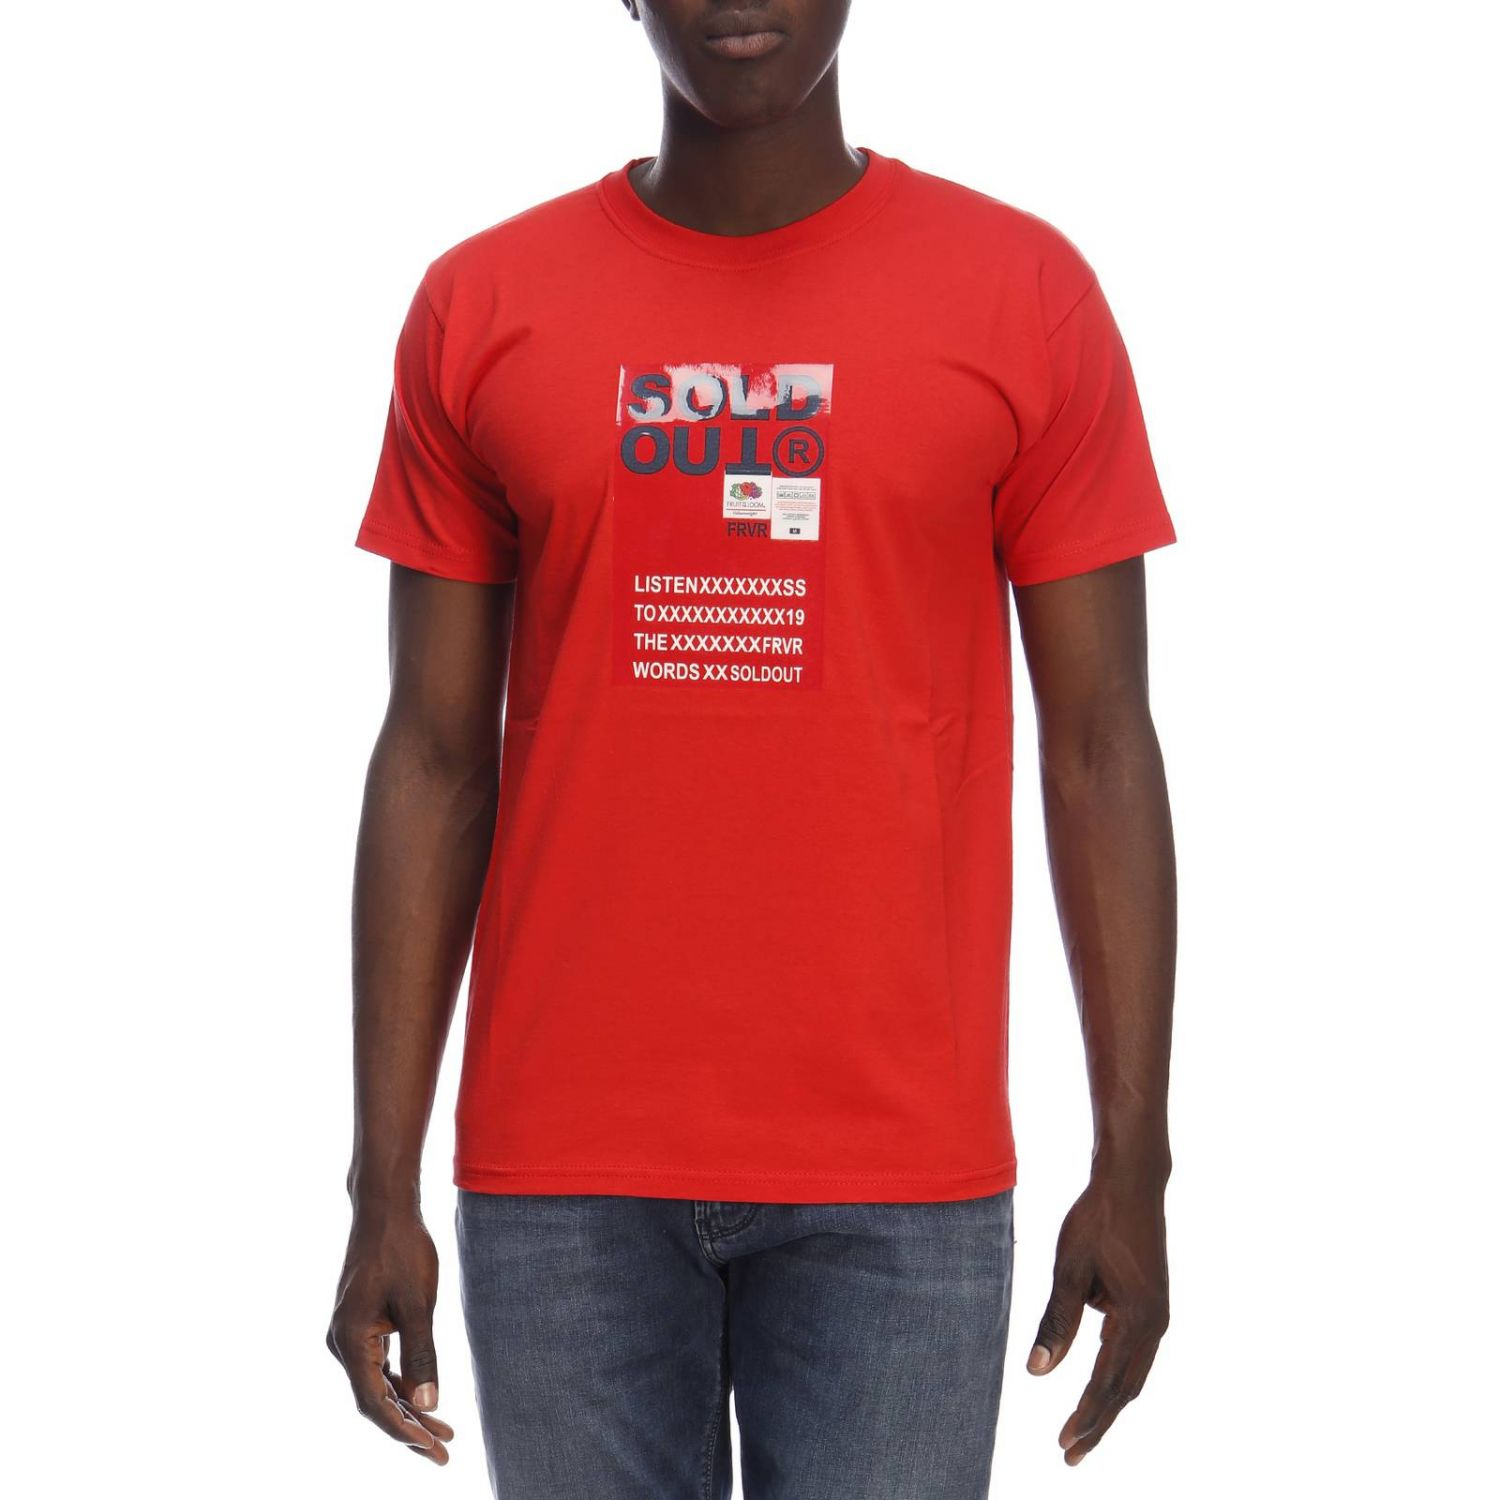 T-shirt men Sold Out red 1